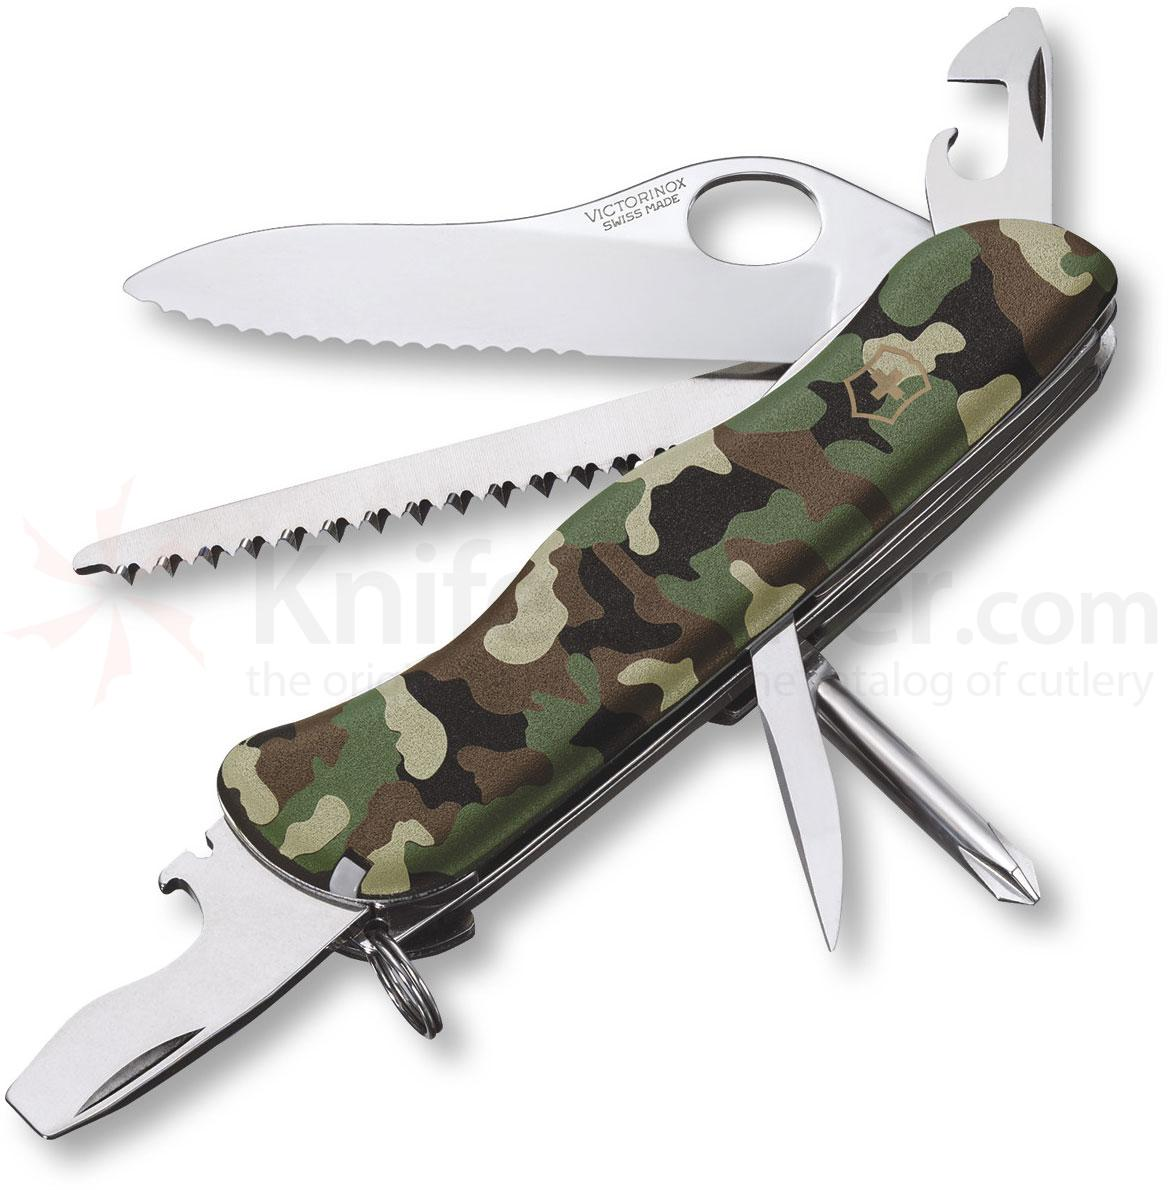 Victorinox Swiss Army One-Hand Trekker Serrated Multi-Tool, Camouflage, 4.37 inch Closed